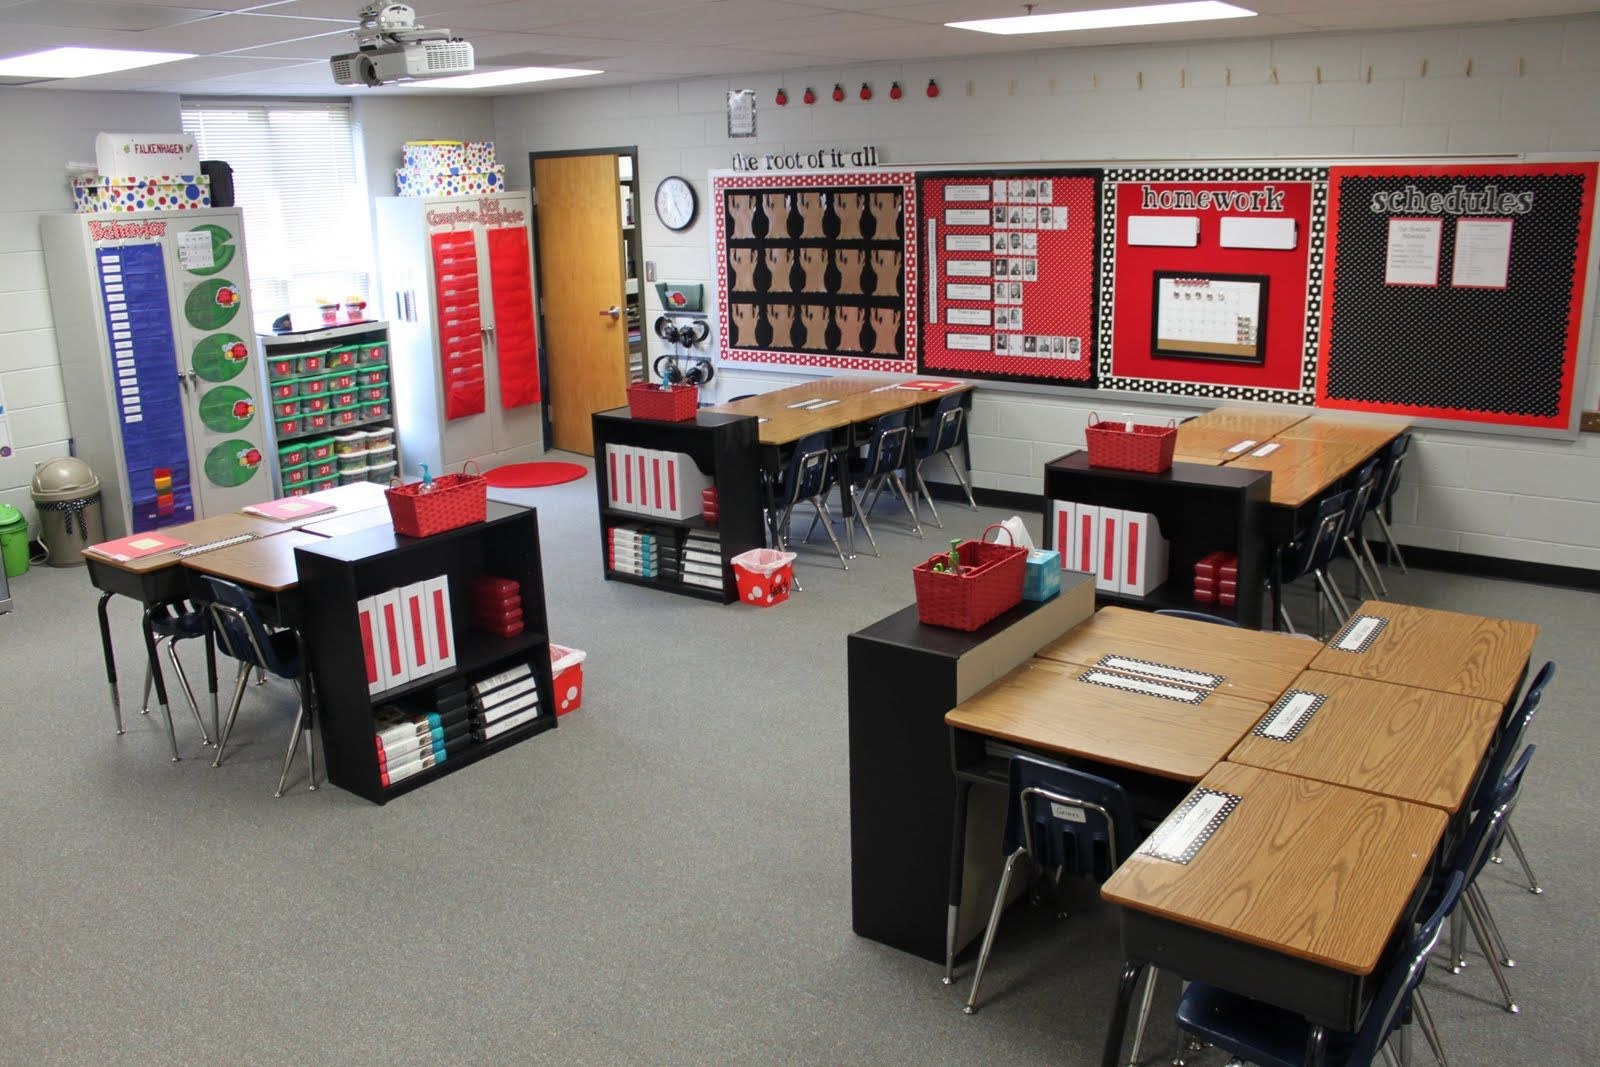 Classroom arrangement ideas on pinterest for Room arrangement ideas